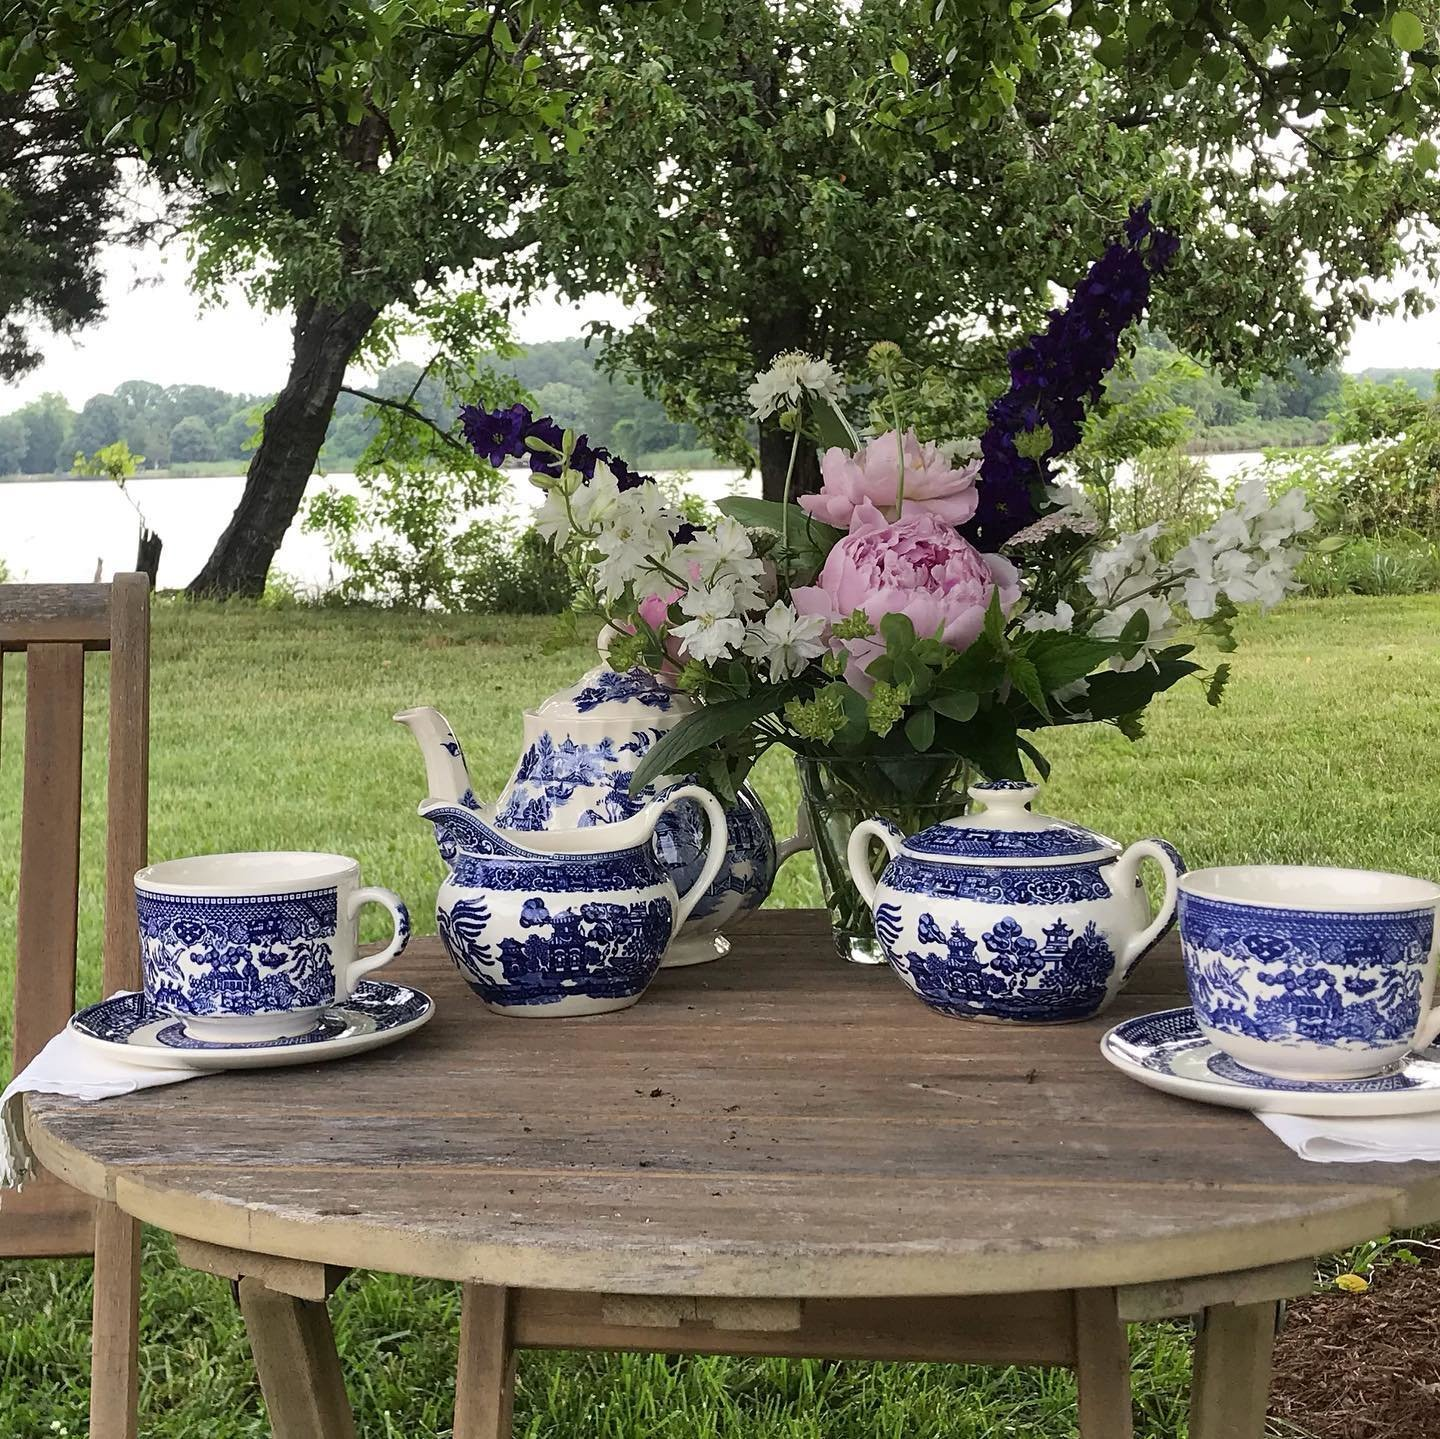 Tea on the farm